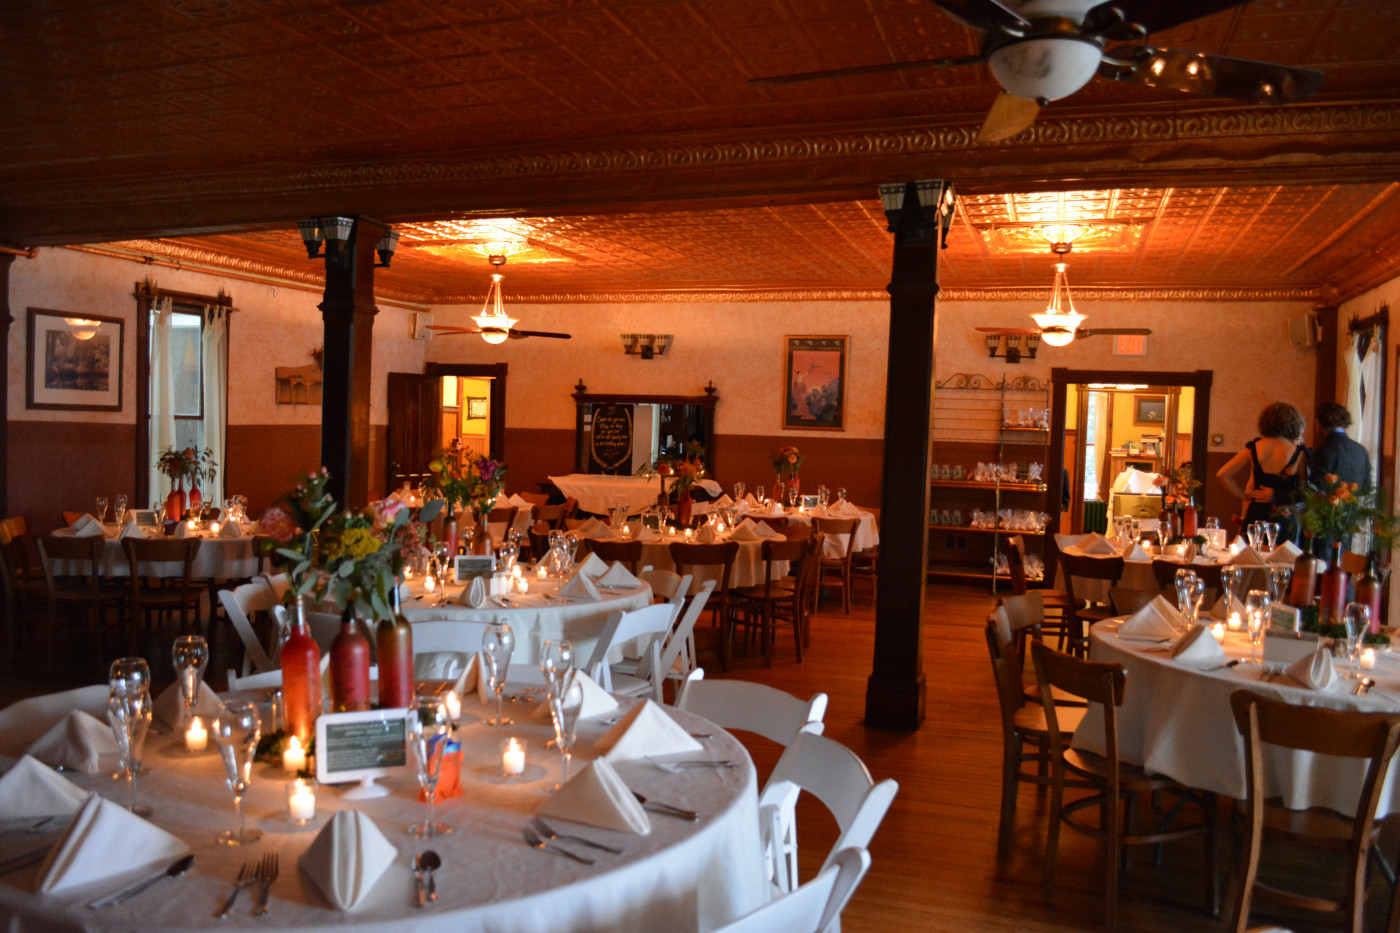 Dining room fit for the wedding of your dreams (Photo courtesy of The Woods Inn)